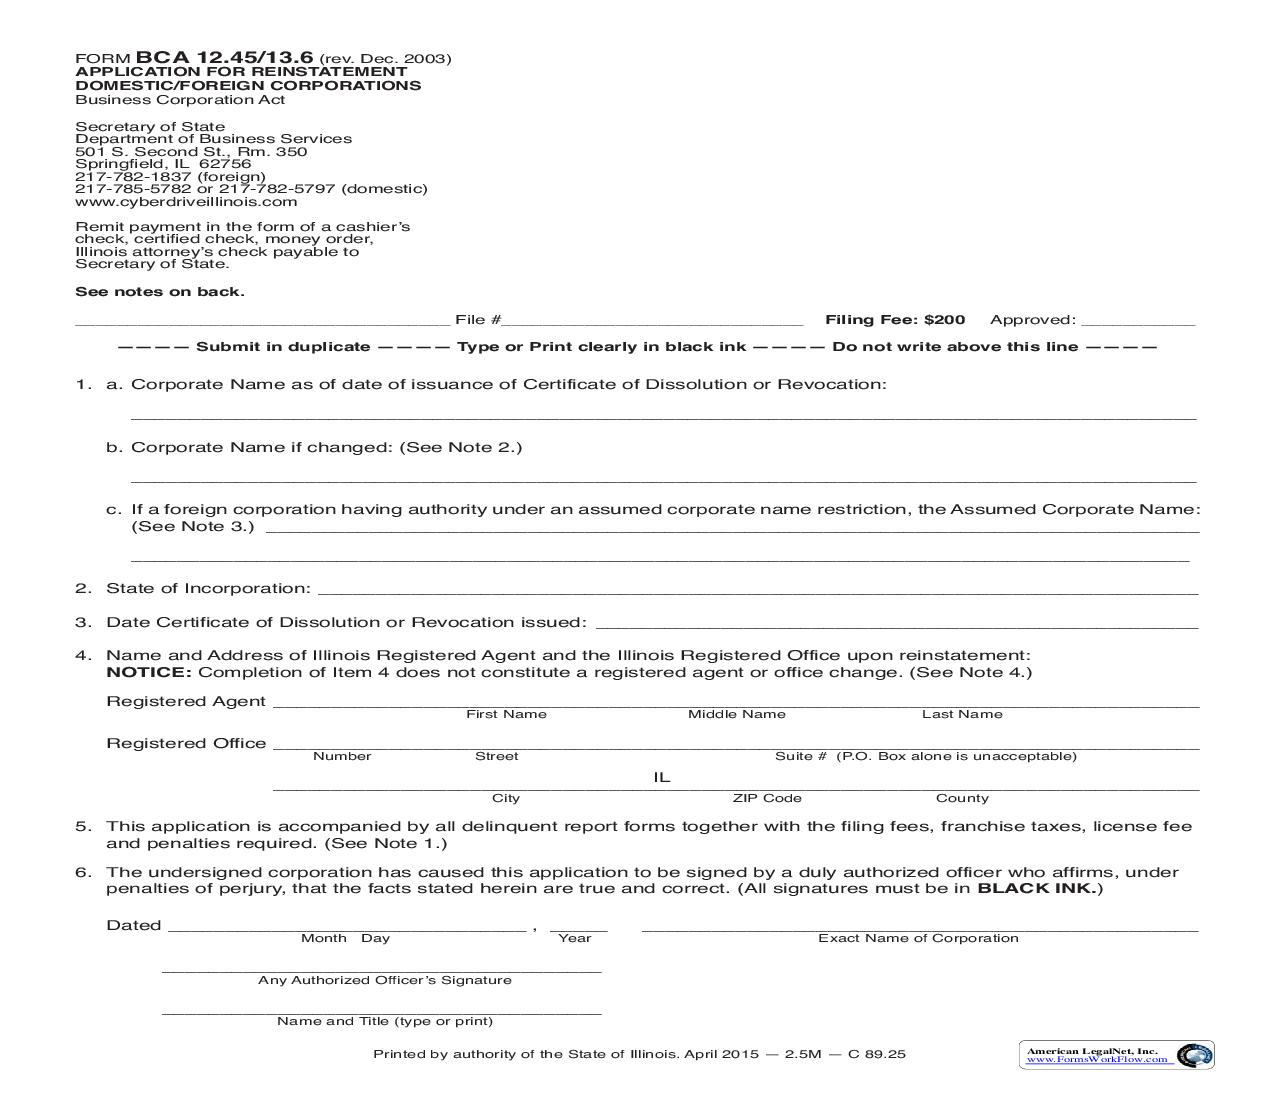 Application For Reinstatement Of Domestic Or Foreign Corporation {BCA-12.45-13.6}   Pdf Fpdf Doc Docx   Illinois